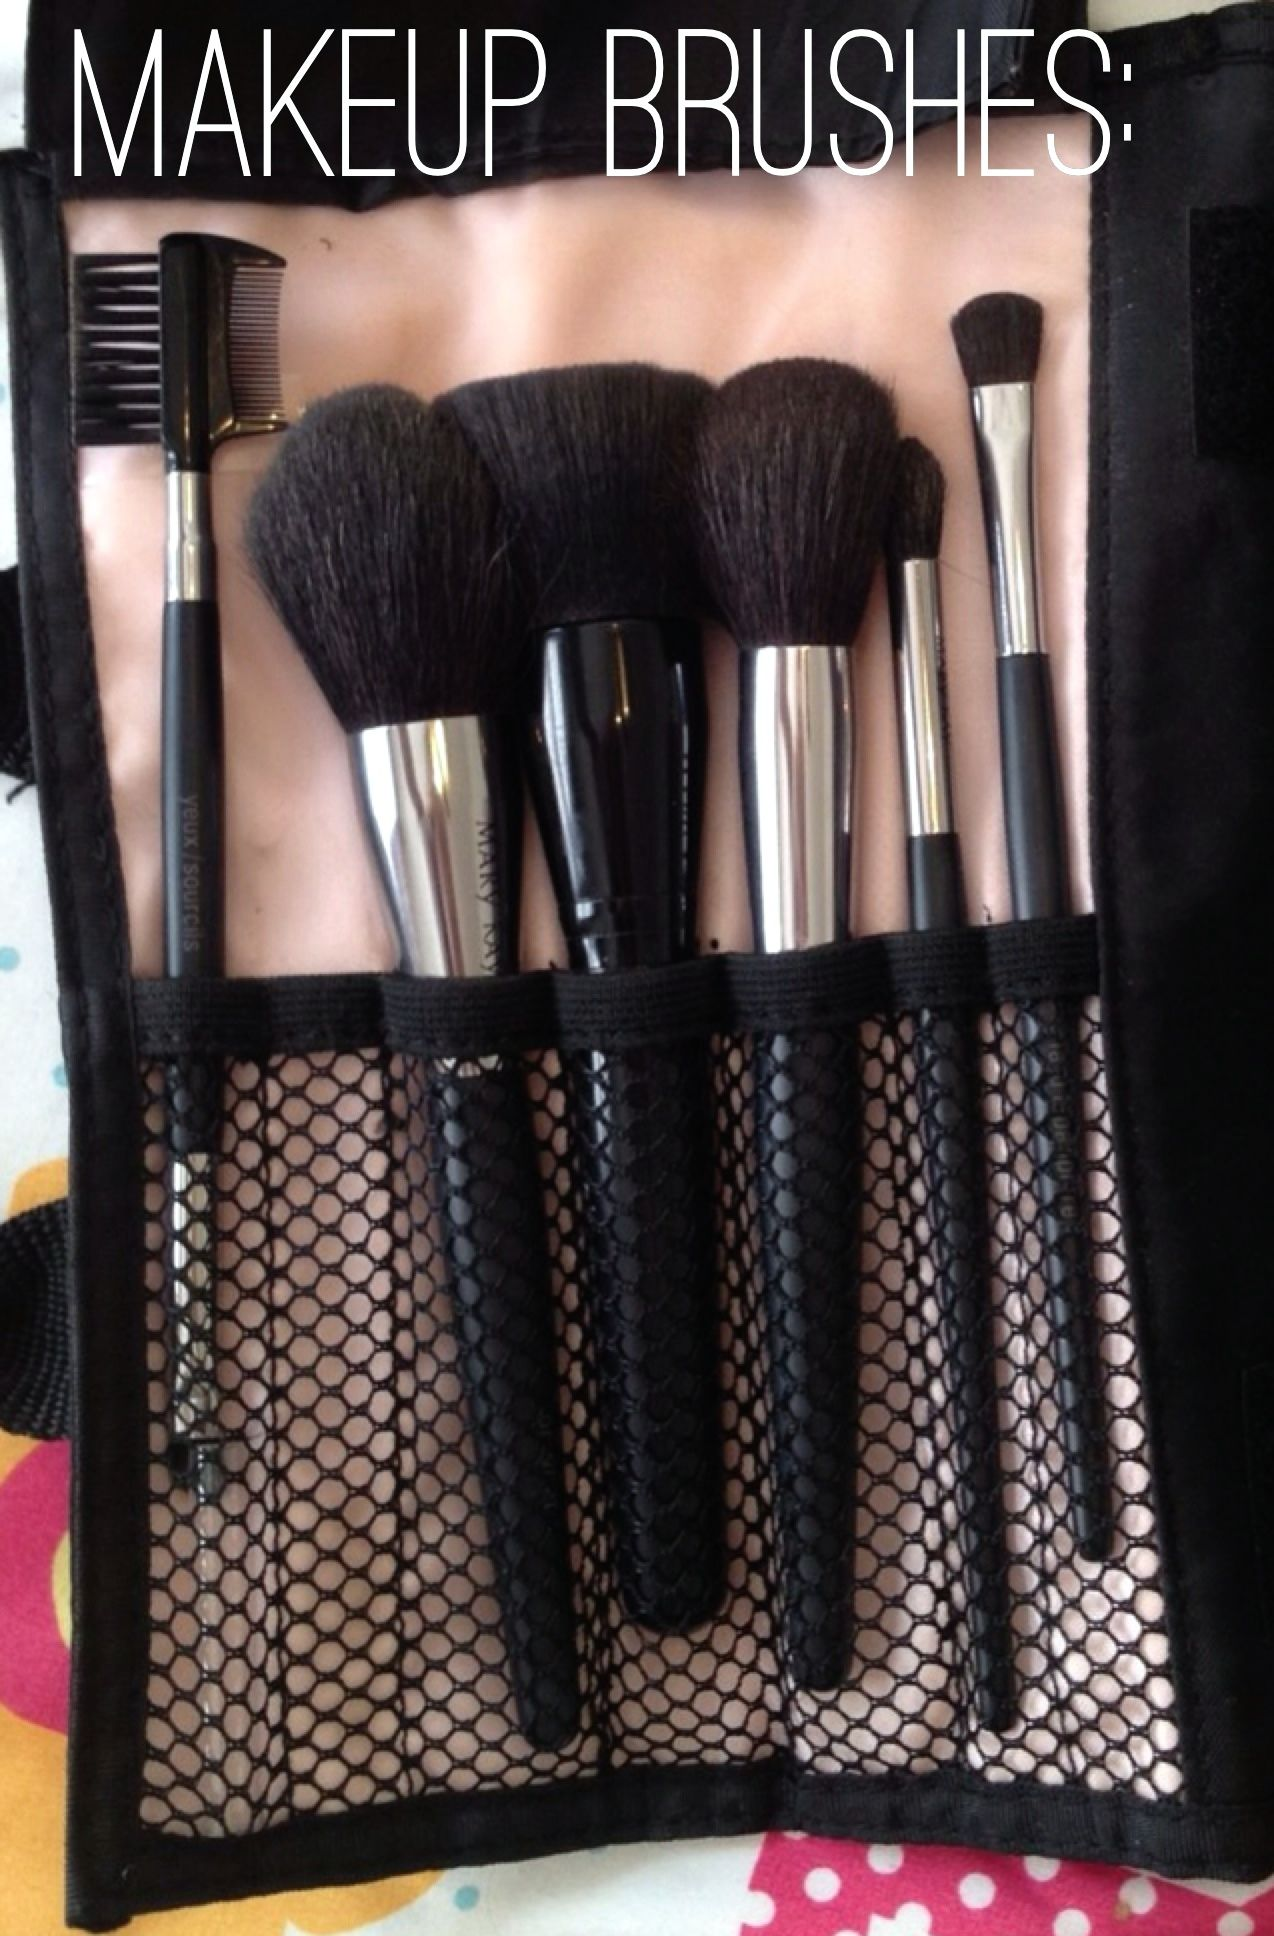 My Mary Kay makeup brushes. They are amazing! The more you